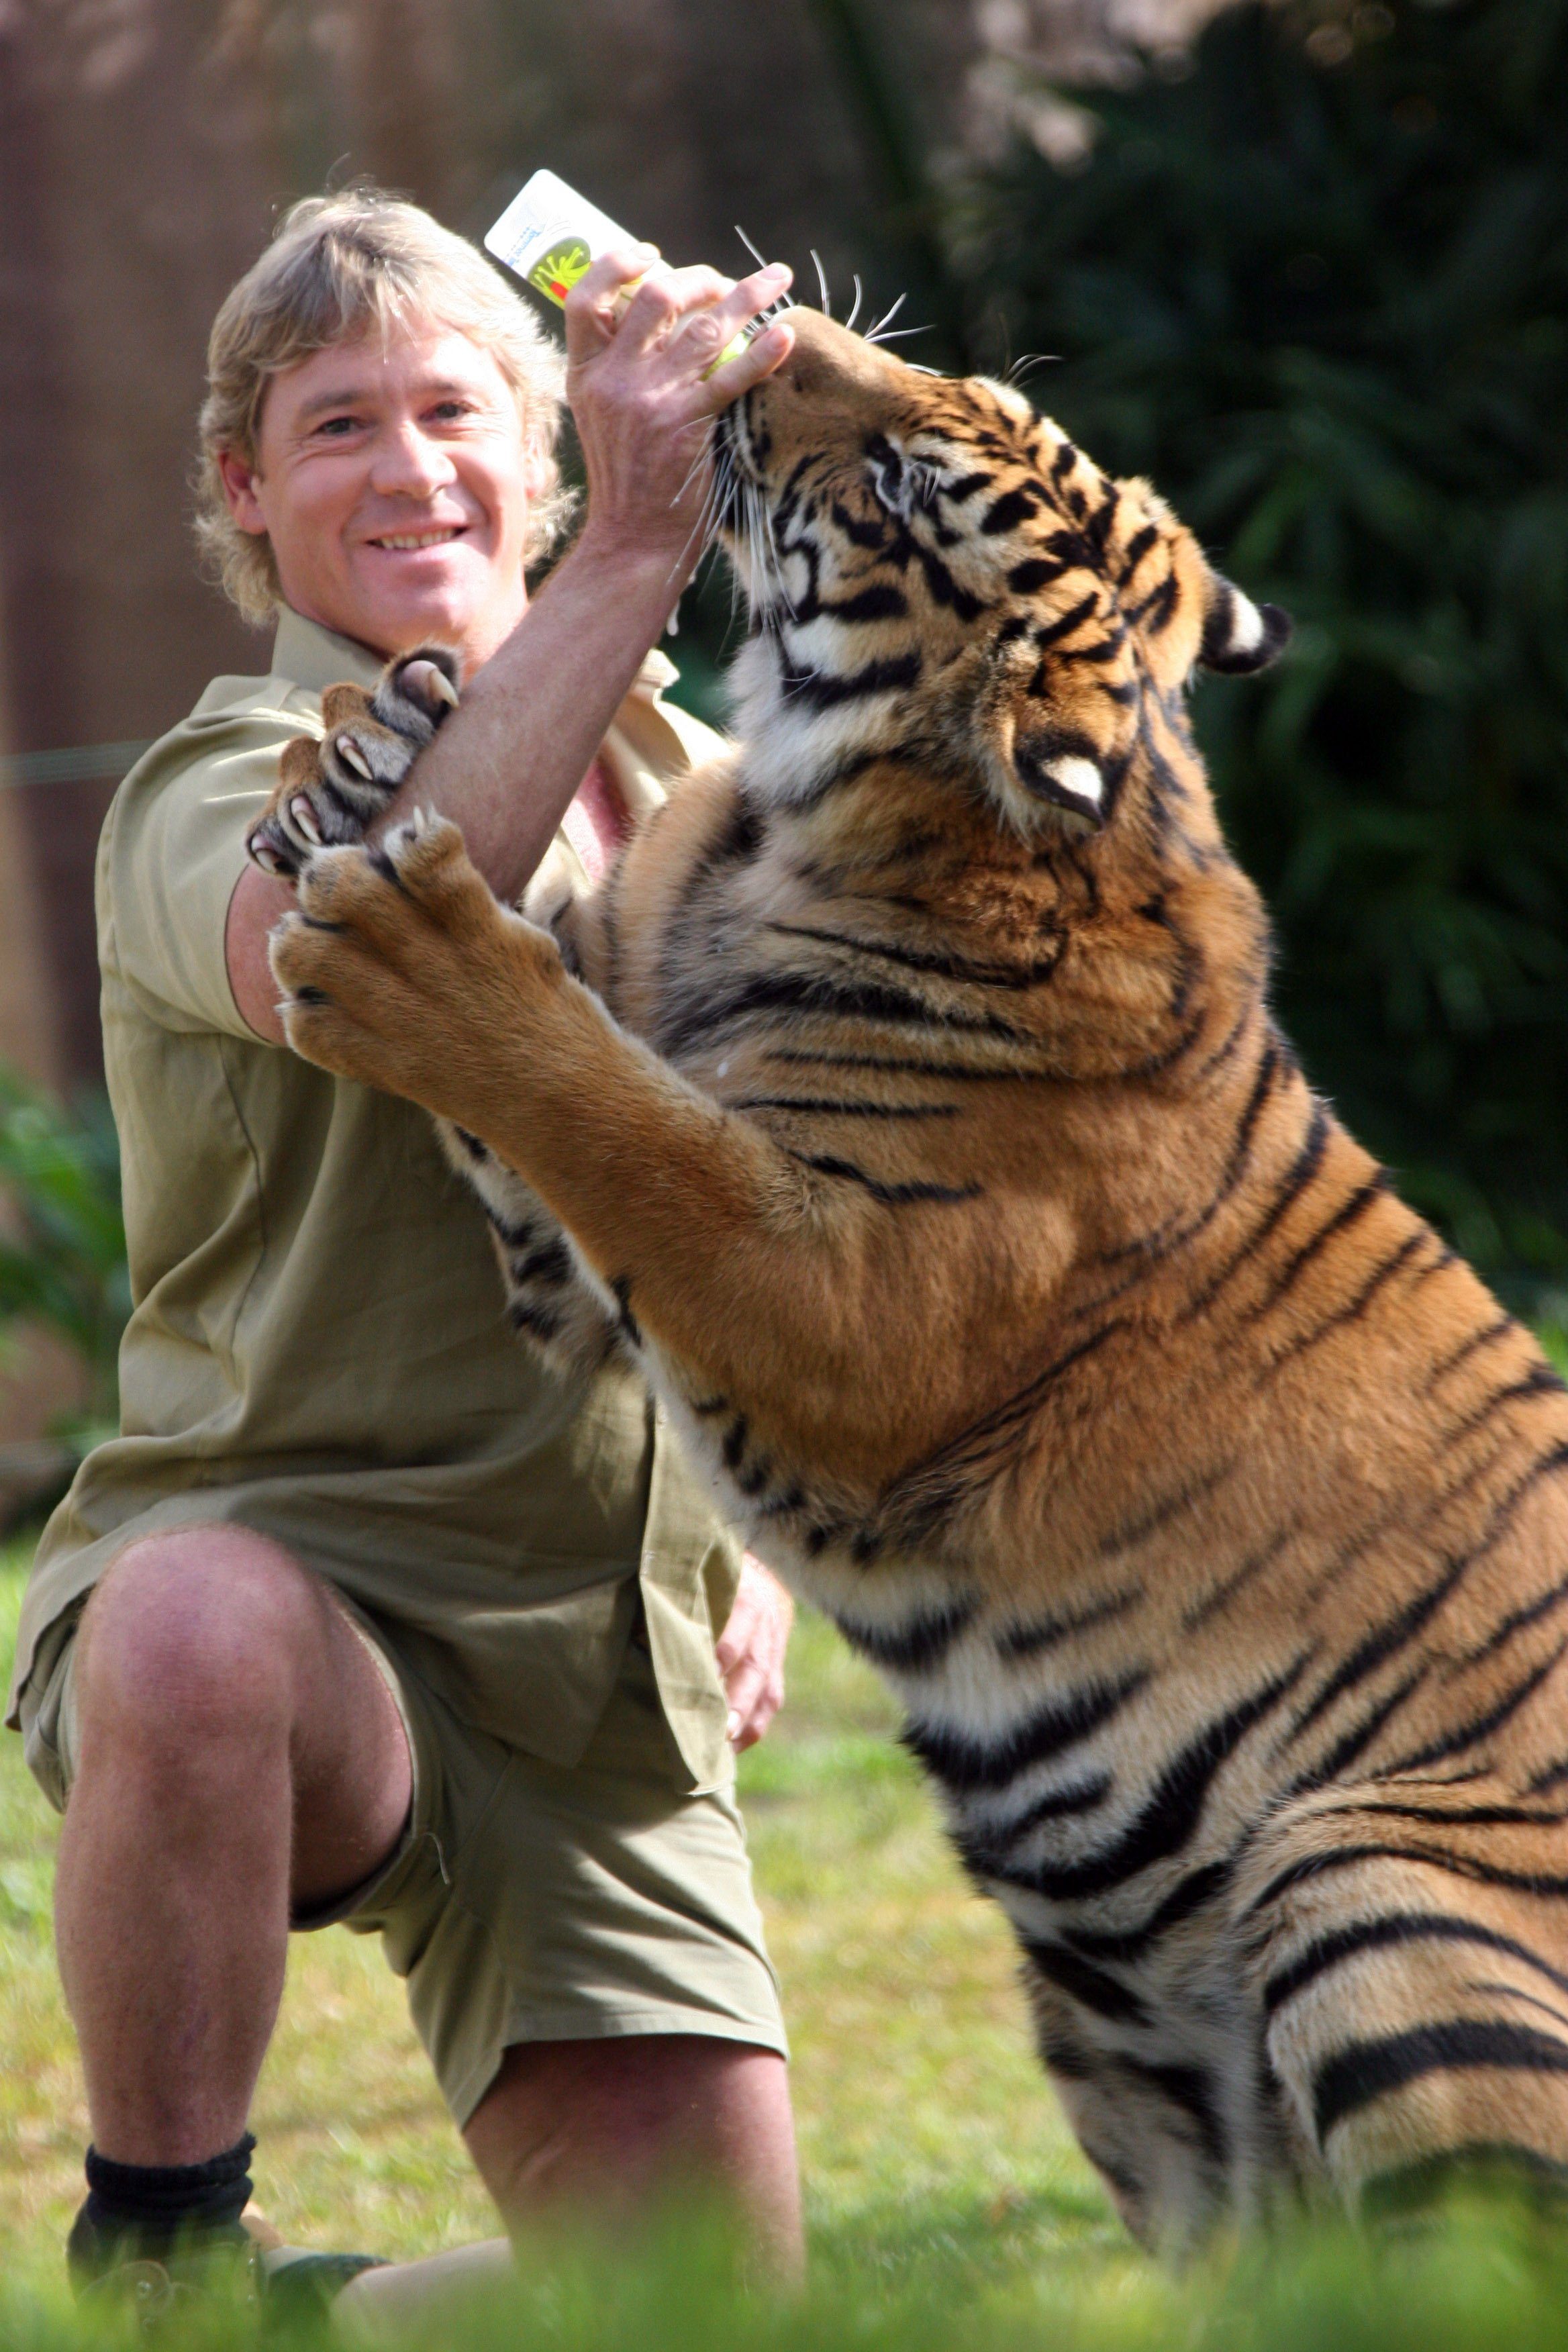 Steve Irwin poses with a tiger at Australia Zoo June 1, 2005 in Beerwah, Australia | Photo: GettyImages